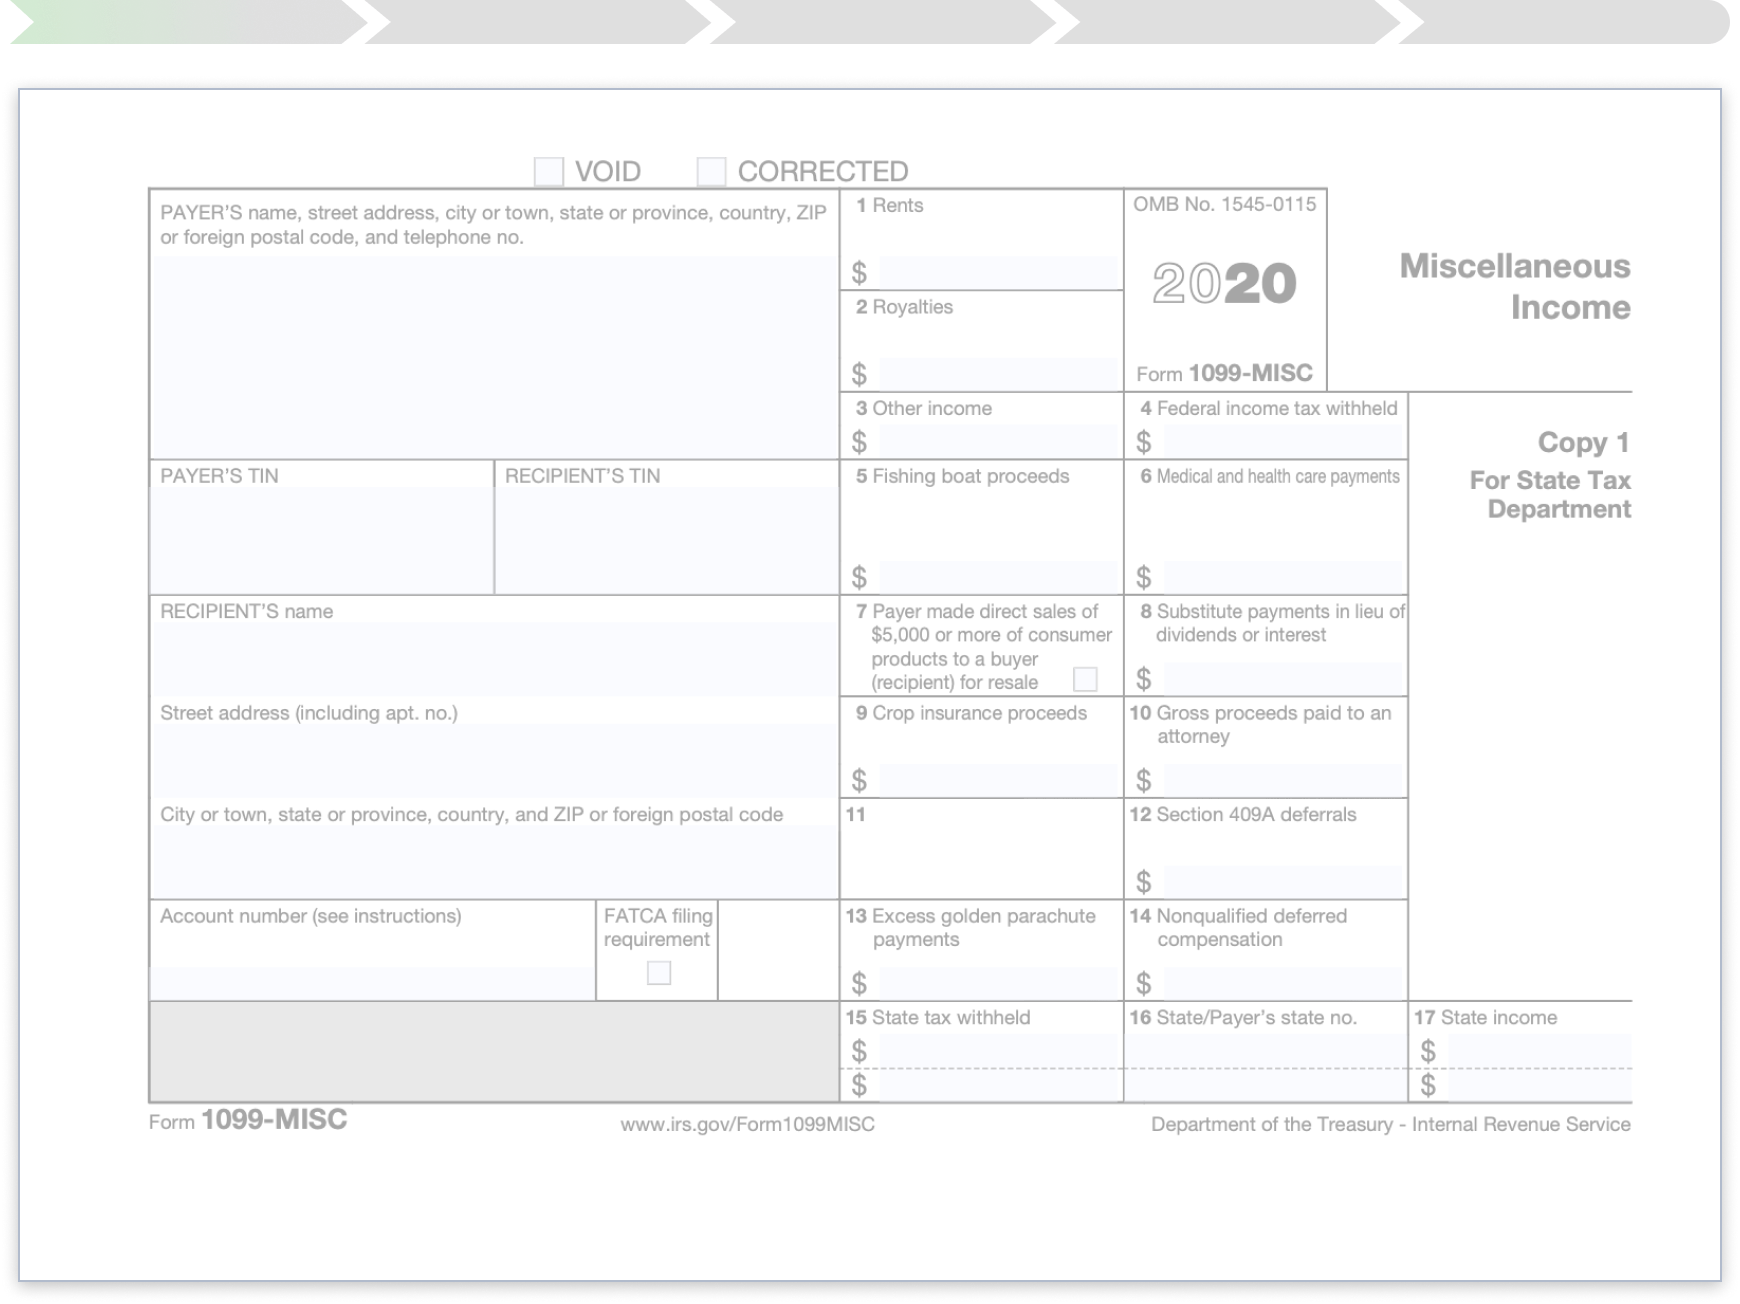 A preview of a blank 1099-MISC document